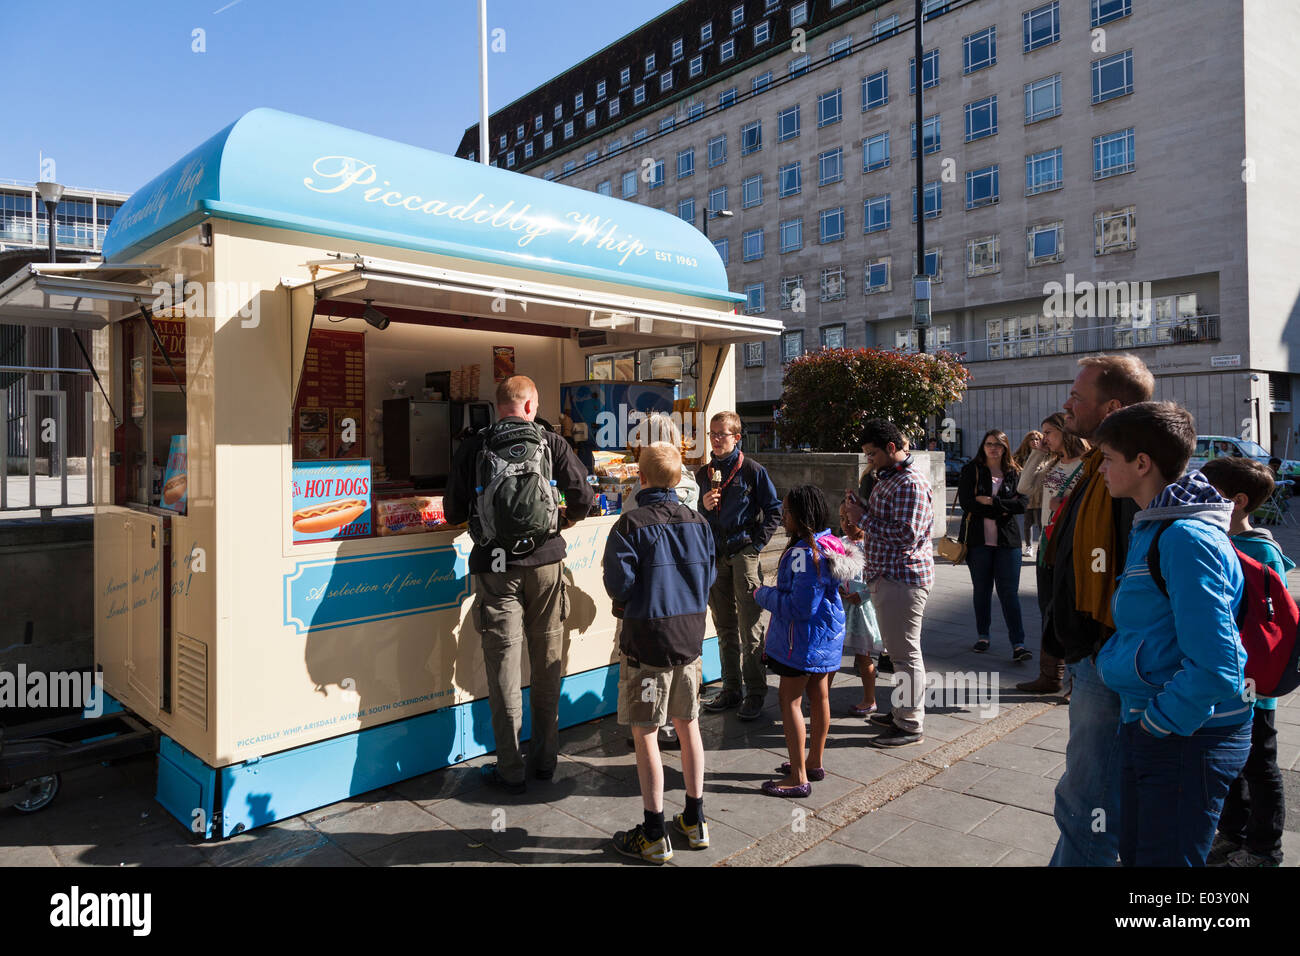 People buying fast food from hotdog and ice cream kiosk. - Stock Image